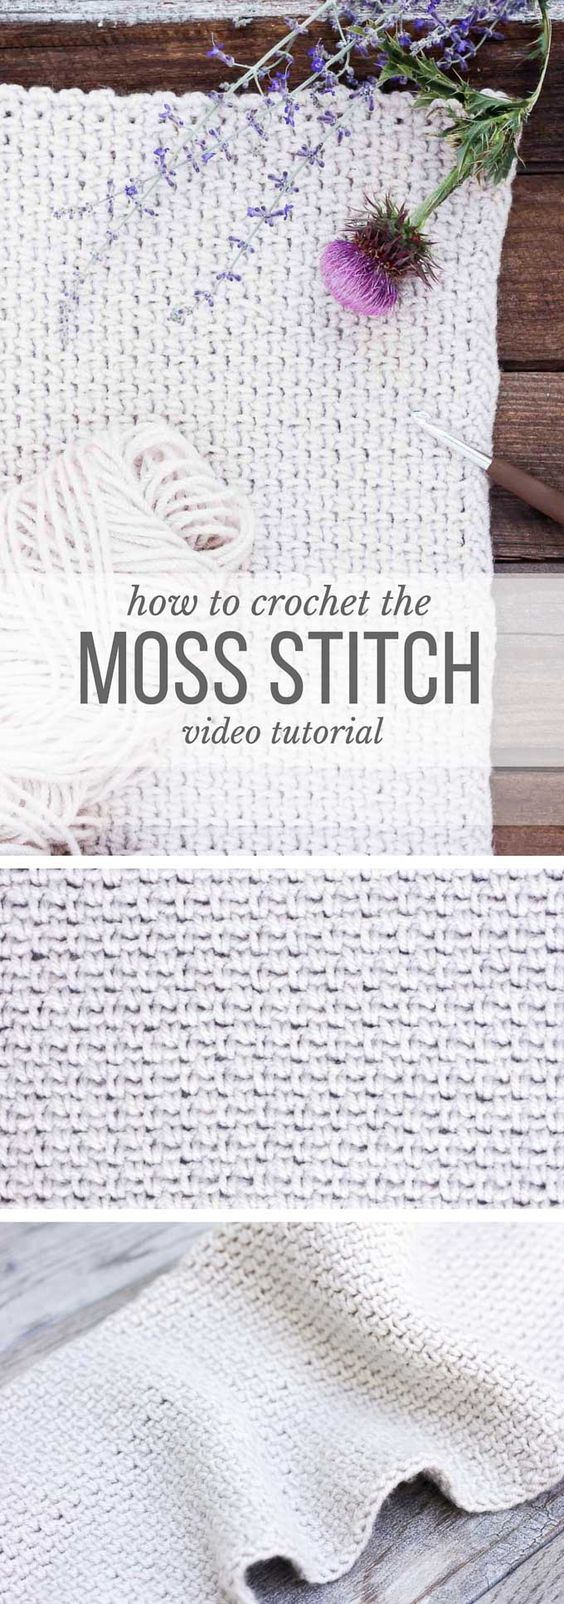 Learn how to crochet the moss stitch with this beginner-friendly video lesson. Perhaps you know the moss stitch by the name the linen stitch, the woven stitch or the granite stitch--either way, it's beautiful and easy to master!: